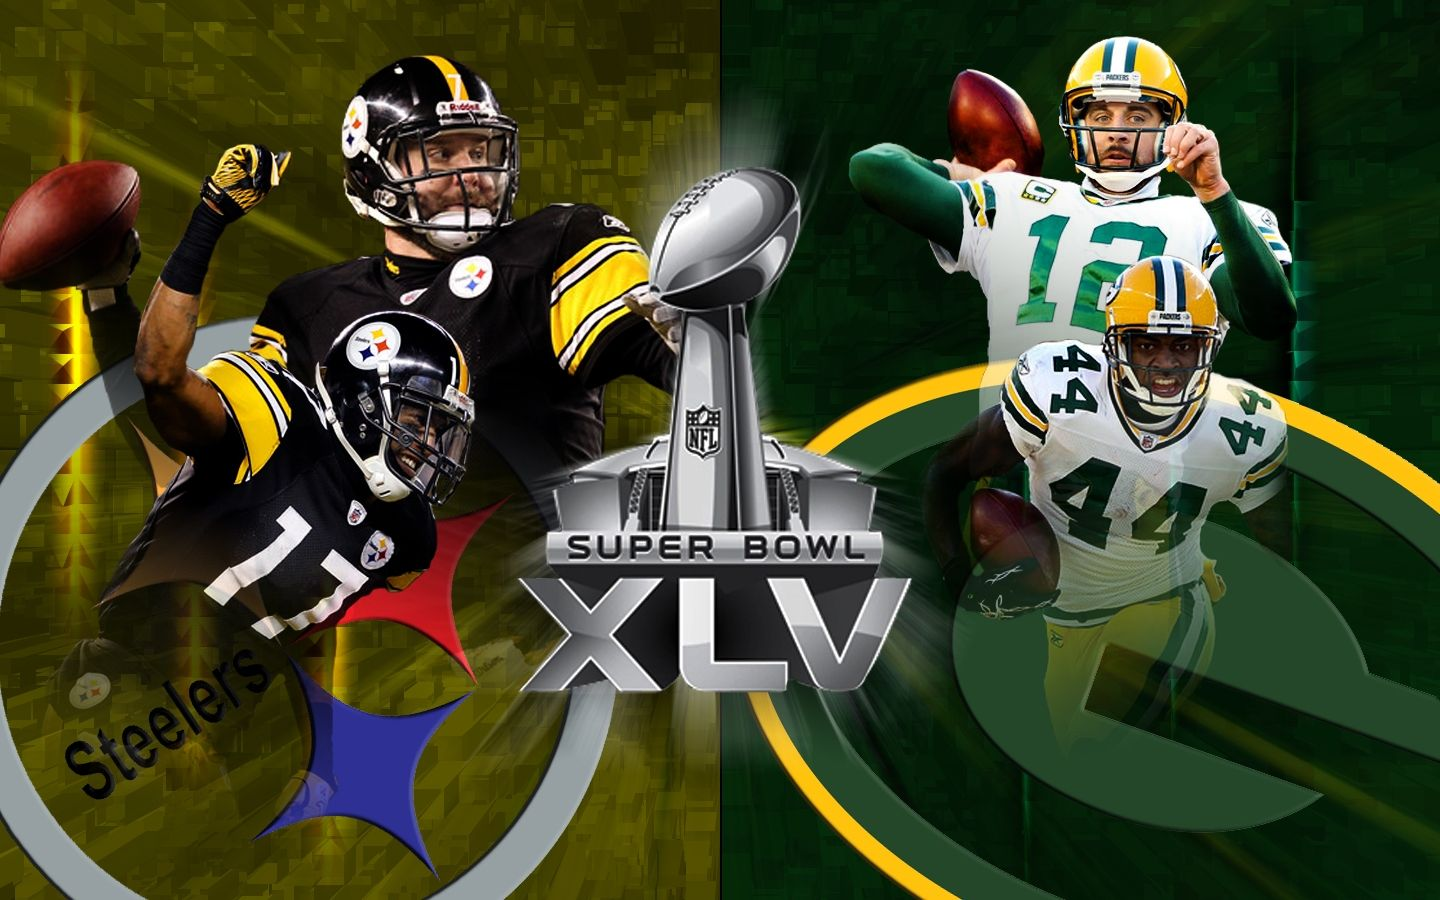 1440x900 Steelers Packers Wallpaper Download Superbowl Xlv Chicago Bears Super Bowl Steelers